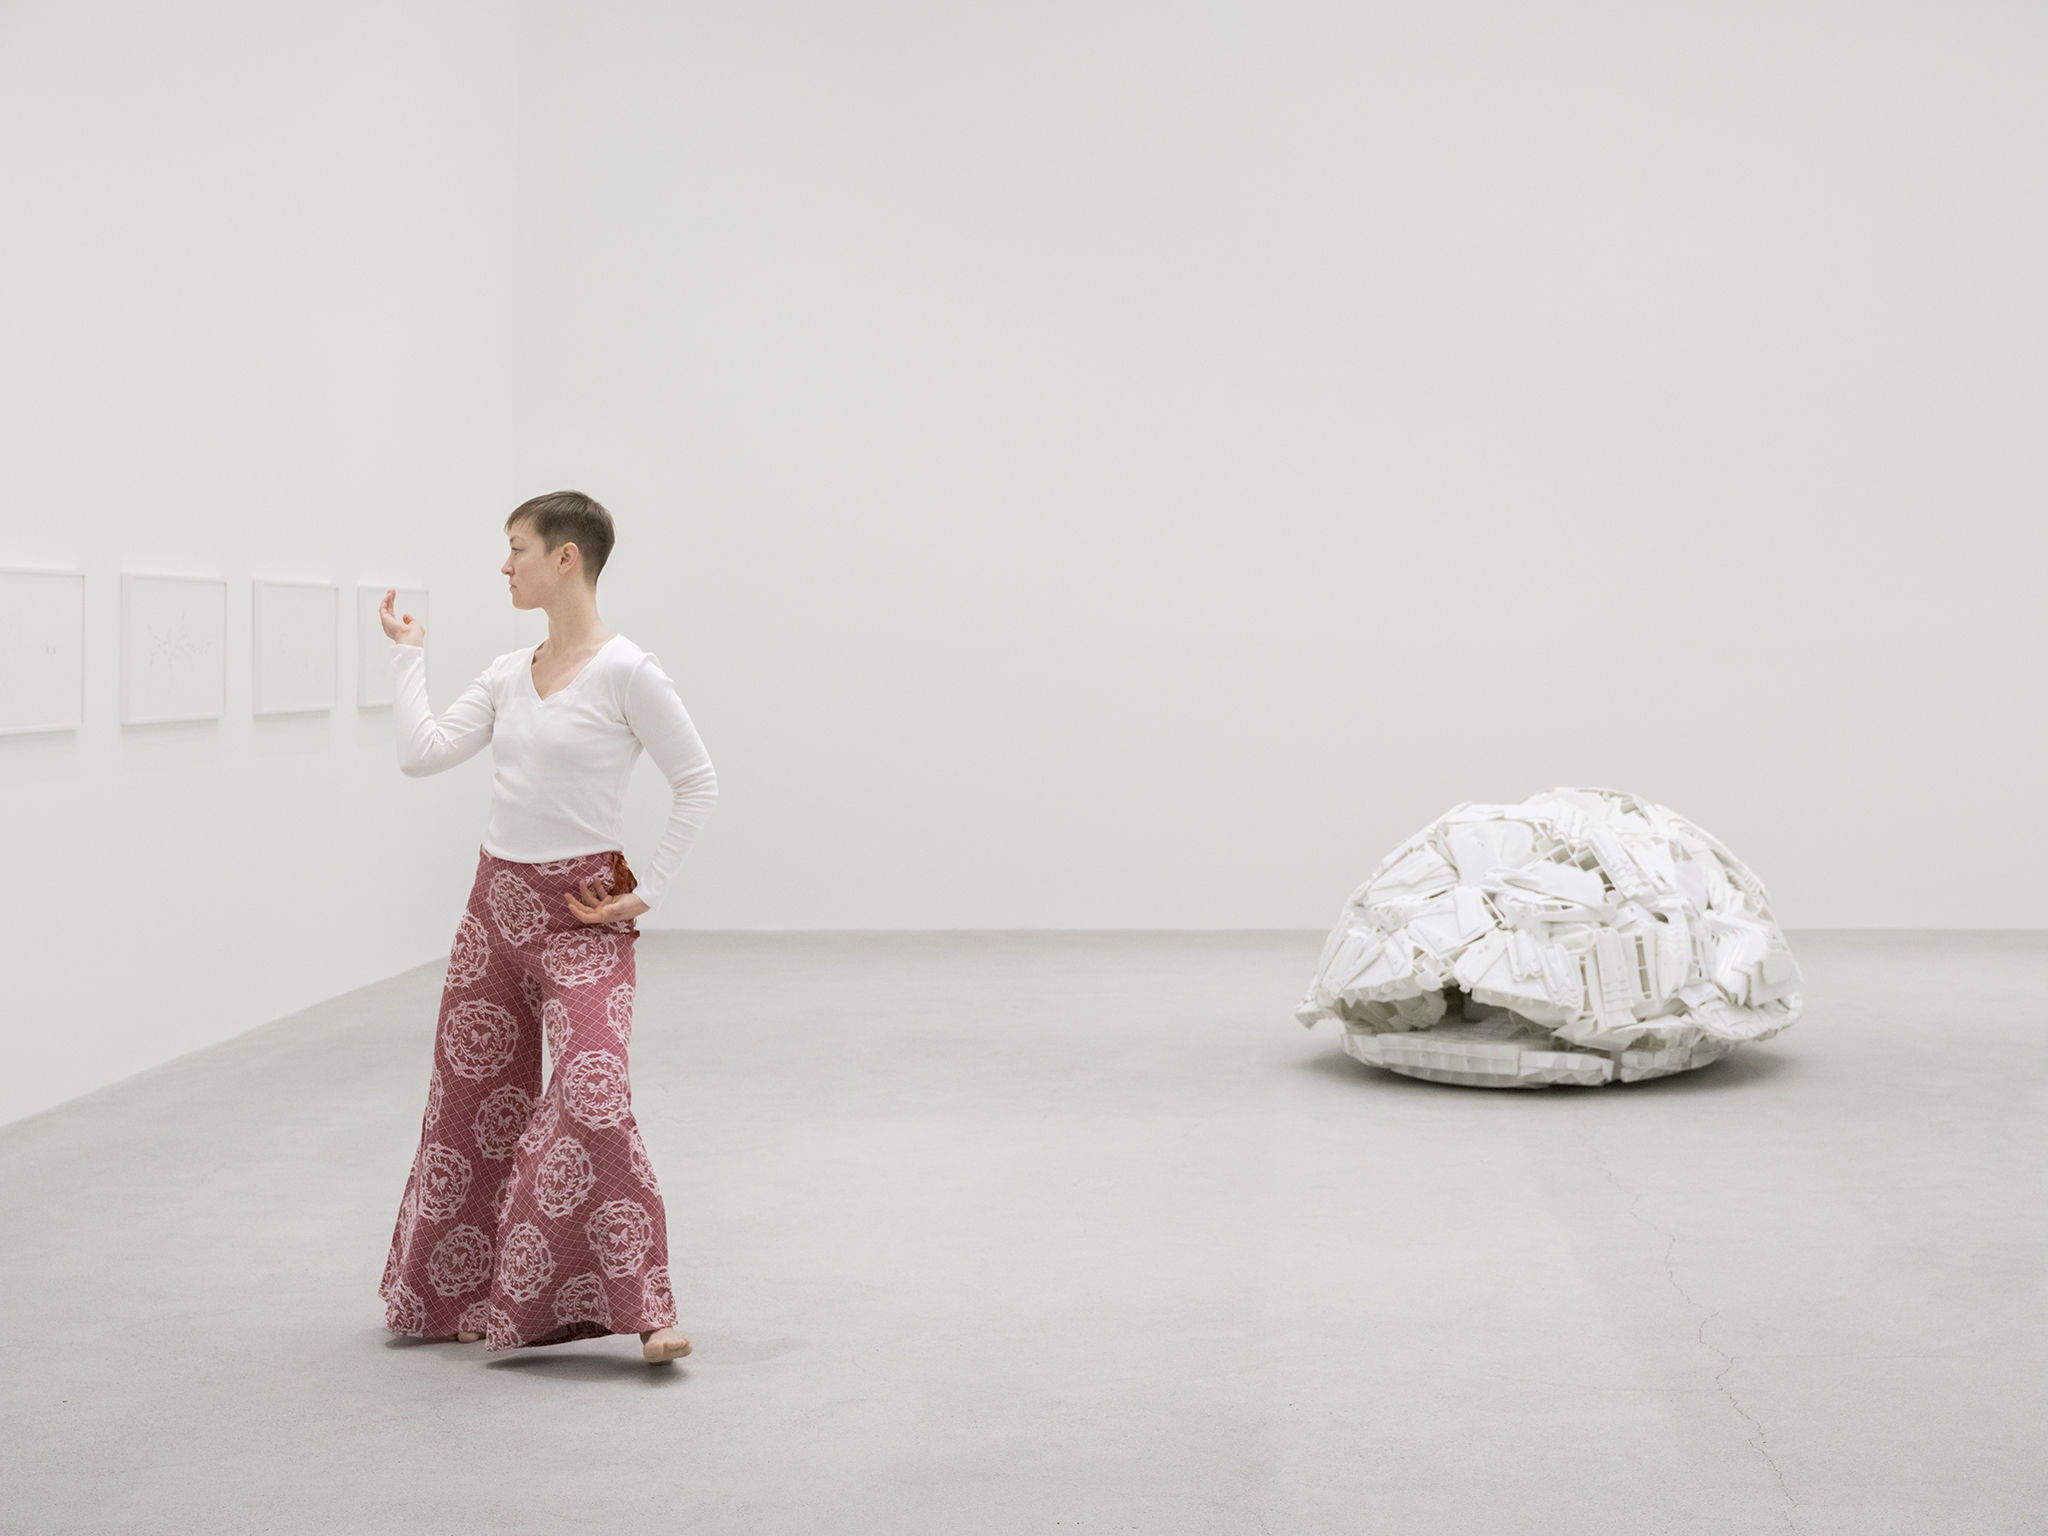 "Trisha Brown and Trisha Brown Dance Company, Accumulation, 1971, choreography for 1 performer, ""Uncle John's Band"" by The Grateful Dead (1970), 4 minutes, 46 seconds. Installation view, Unexplained Parade, Catriona Jeffries, Vancouver, February 9, 2019 by"